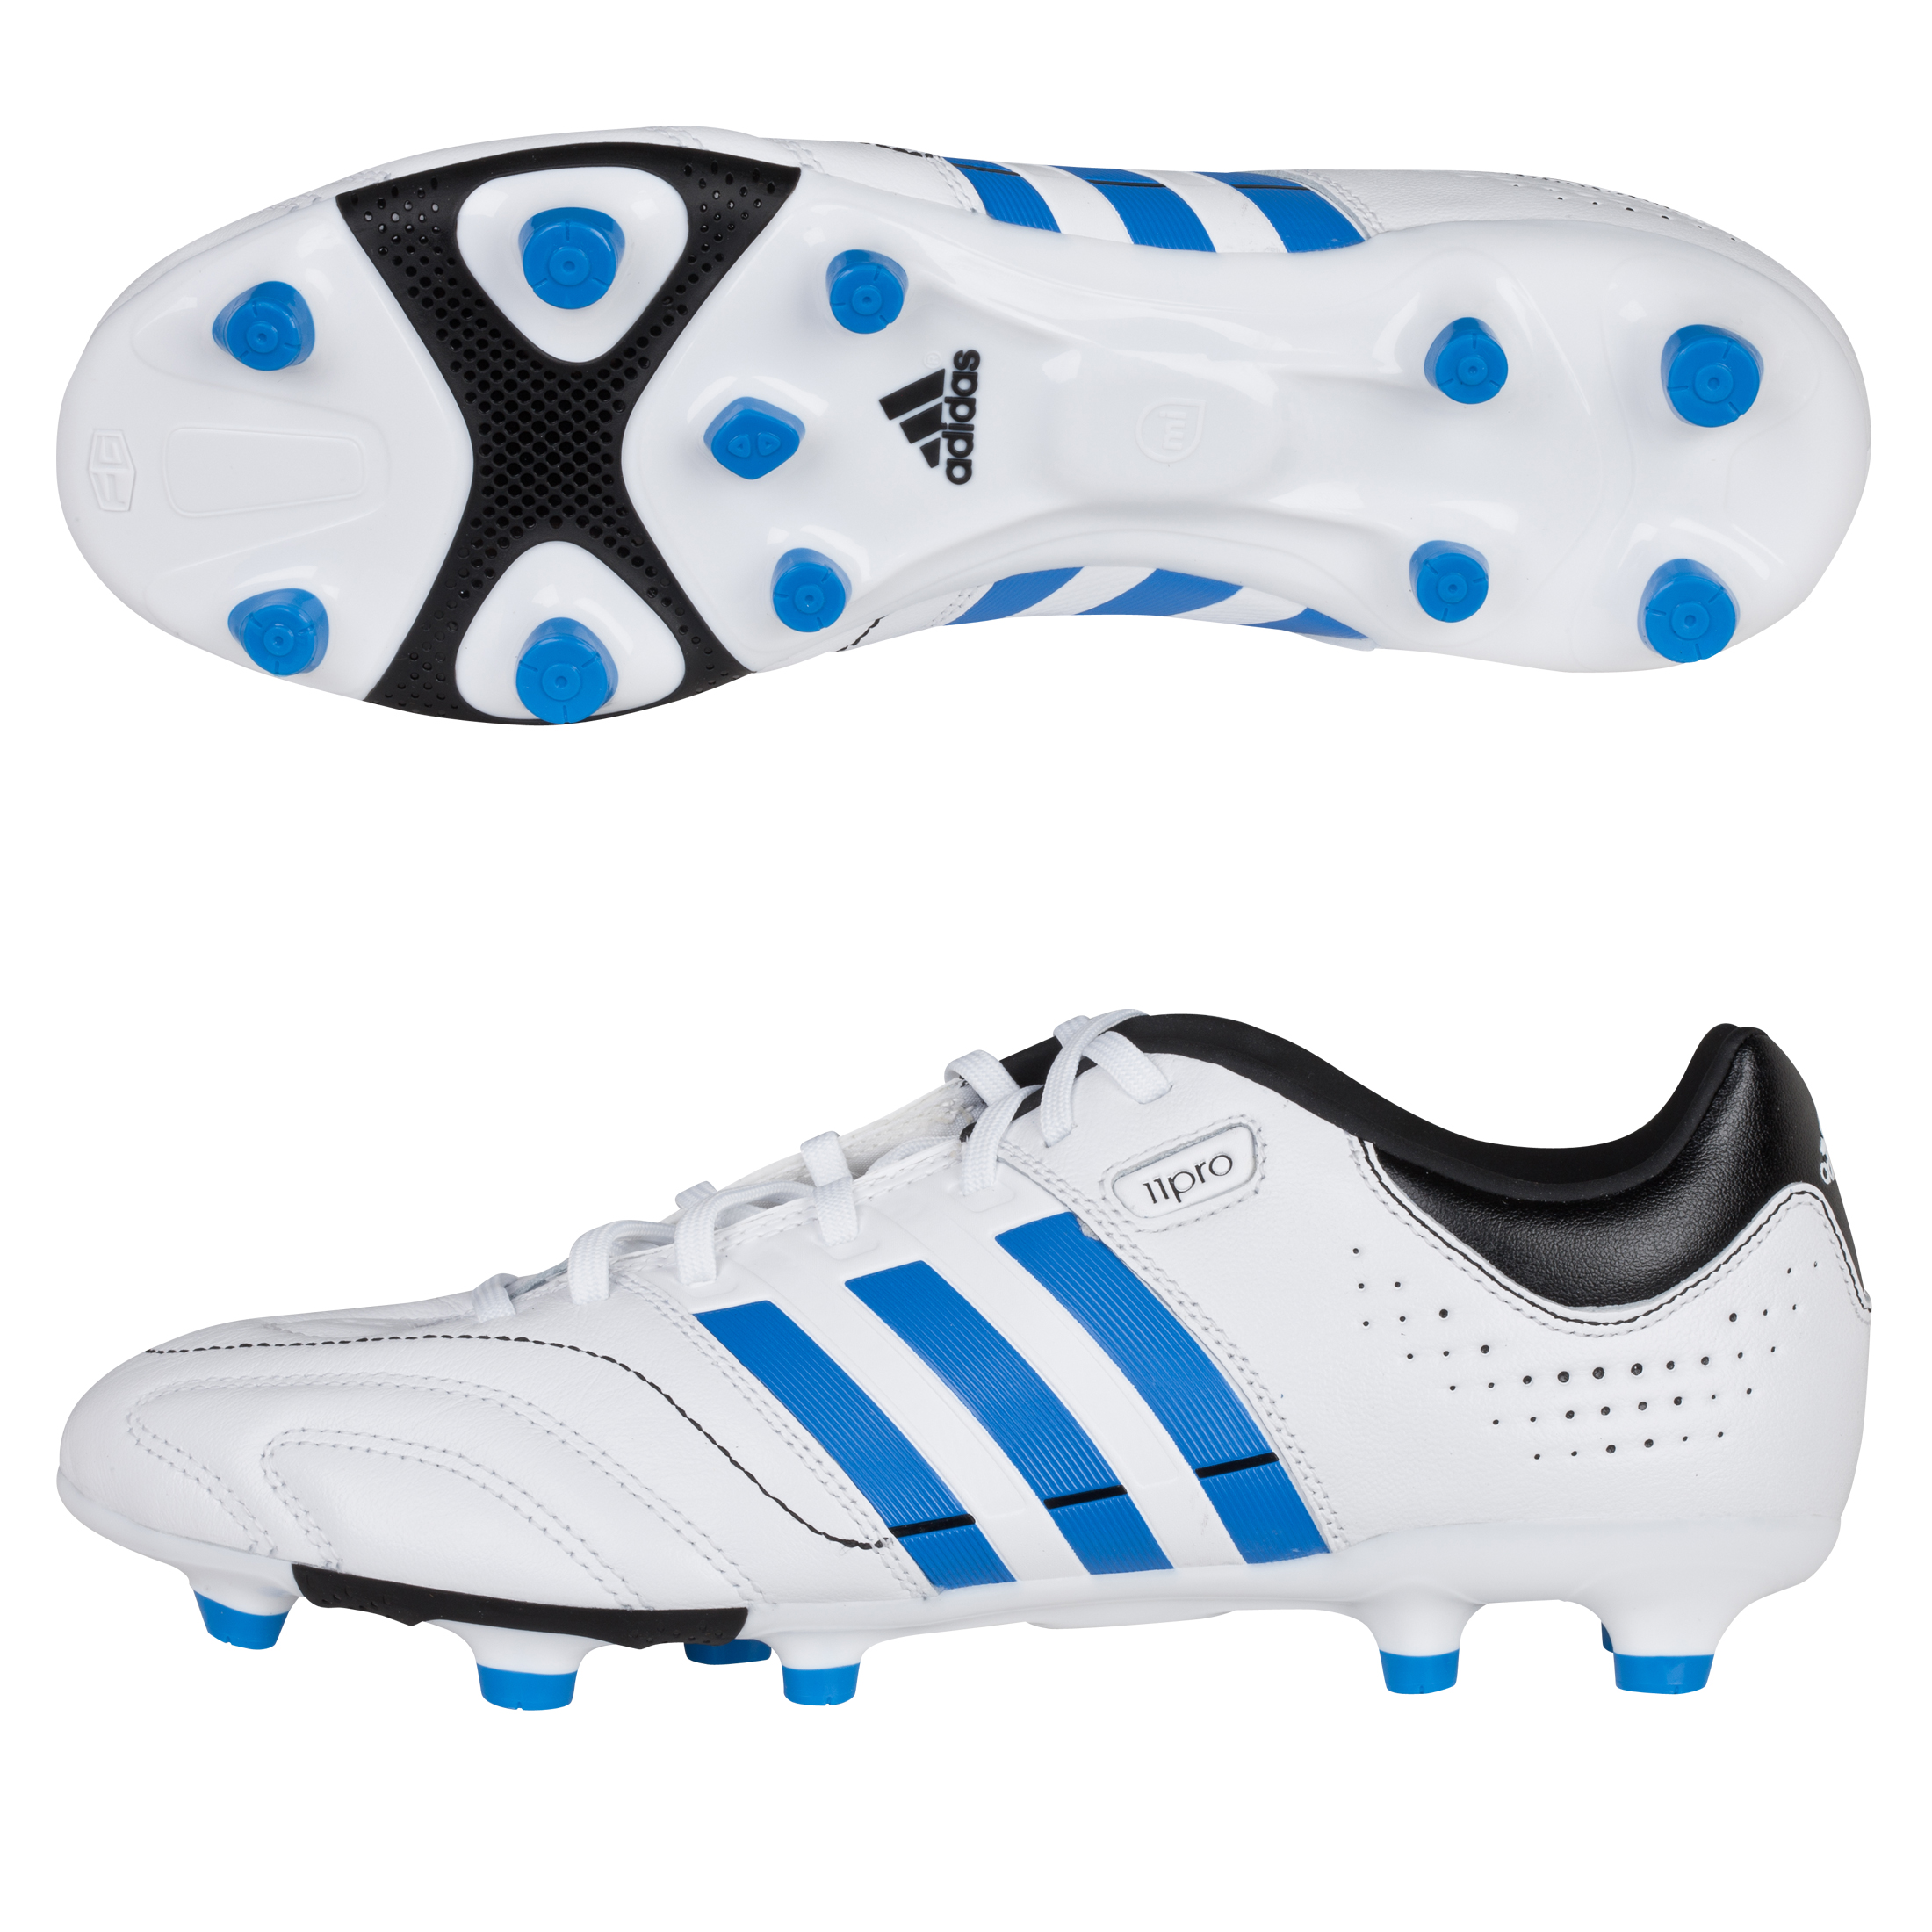 Adidas 11Core TRX Firm Ground Football Boots - White/Bright Blue/Black